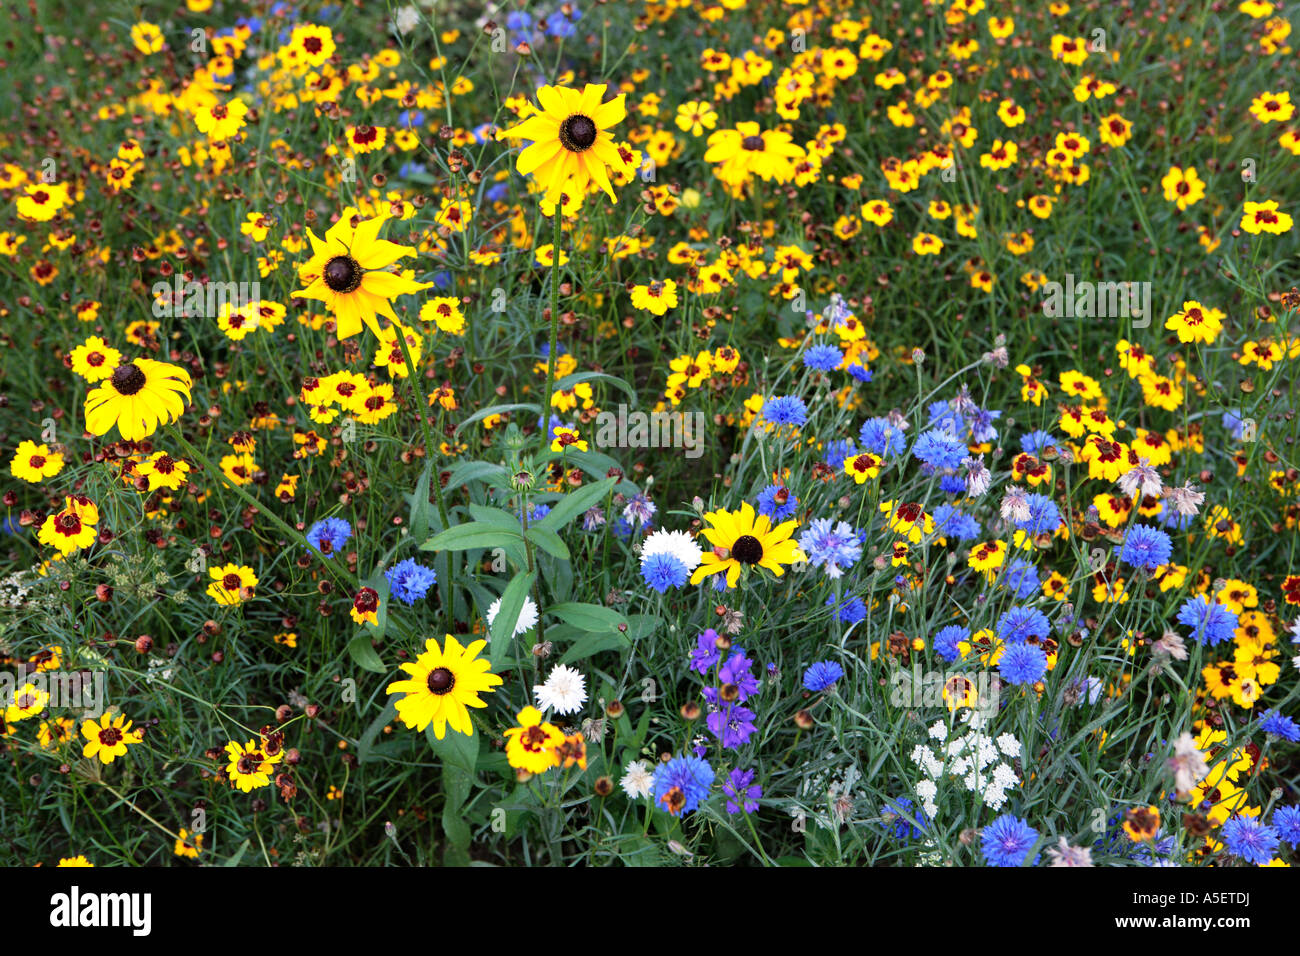 Mixed Yellow And Blue Flowers In Field Stock Photo 11291549 Alamy